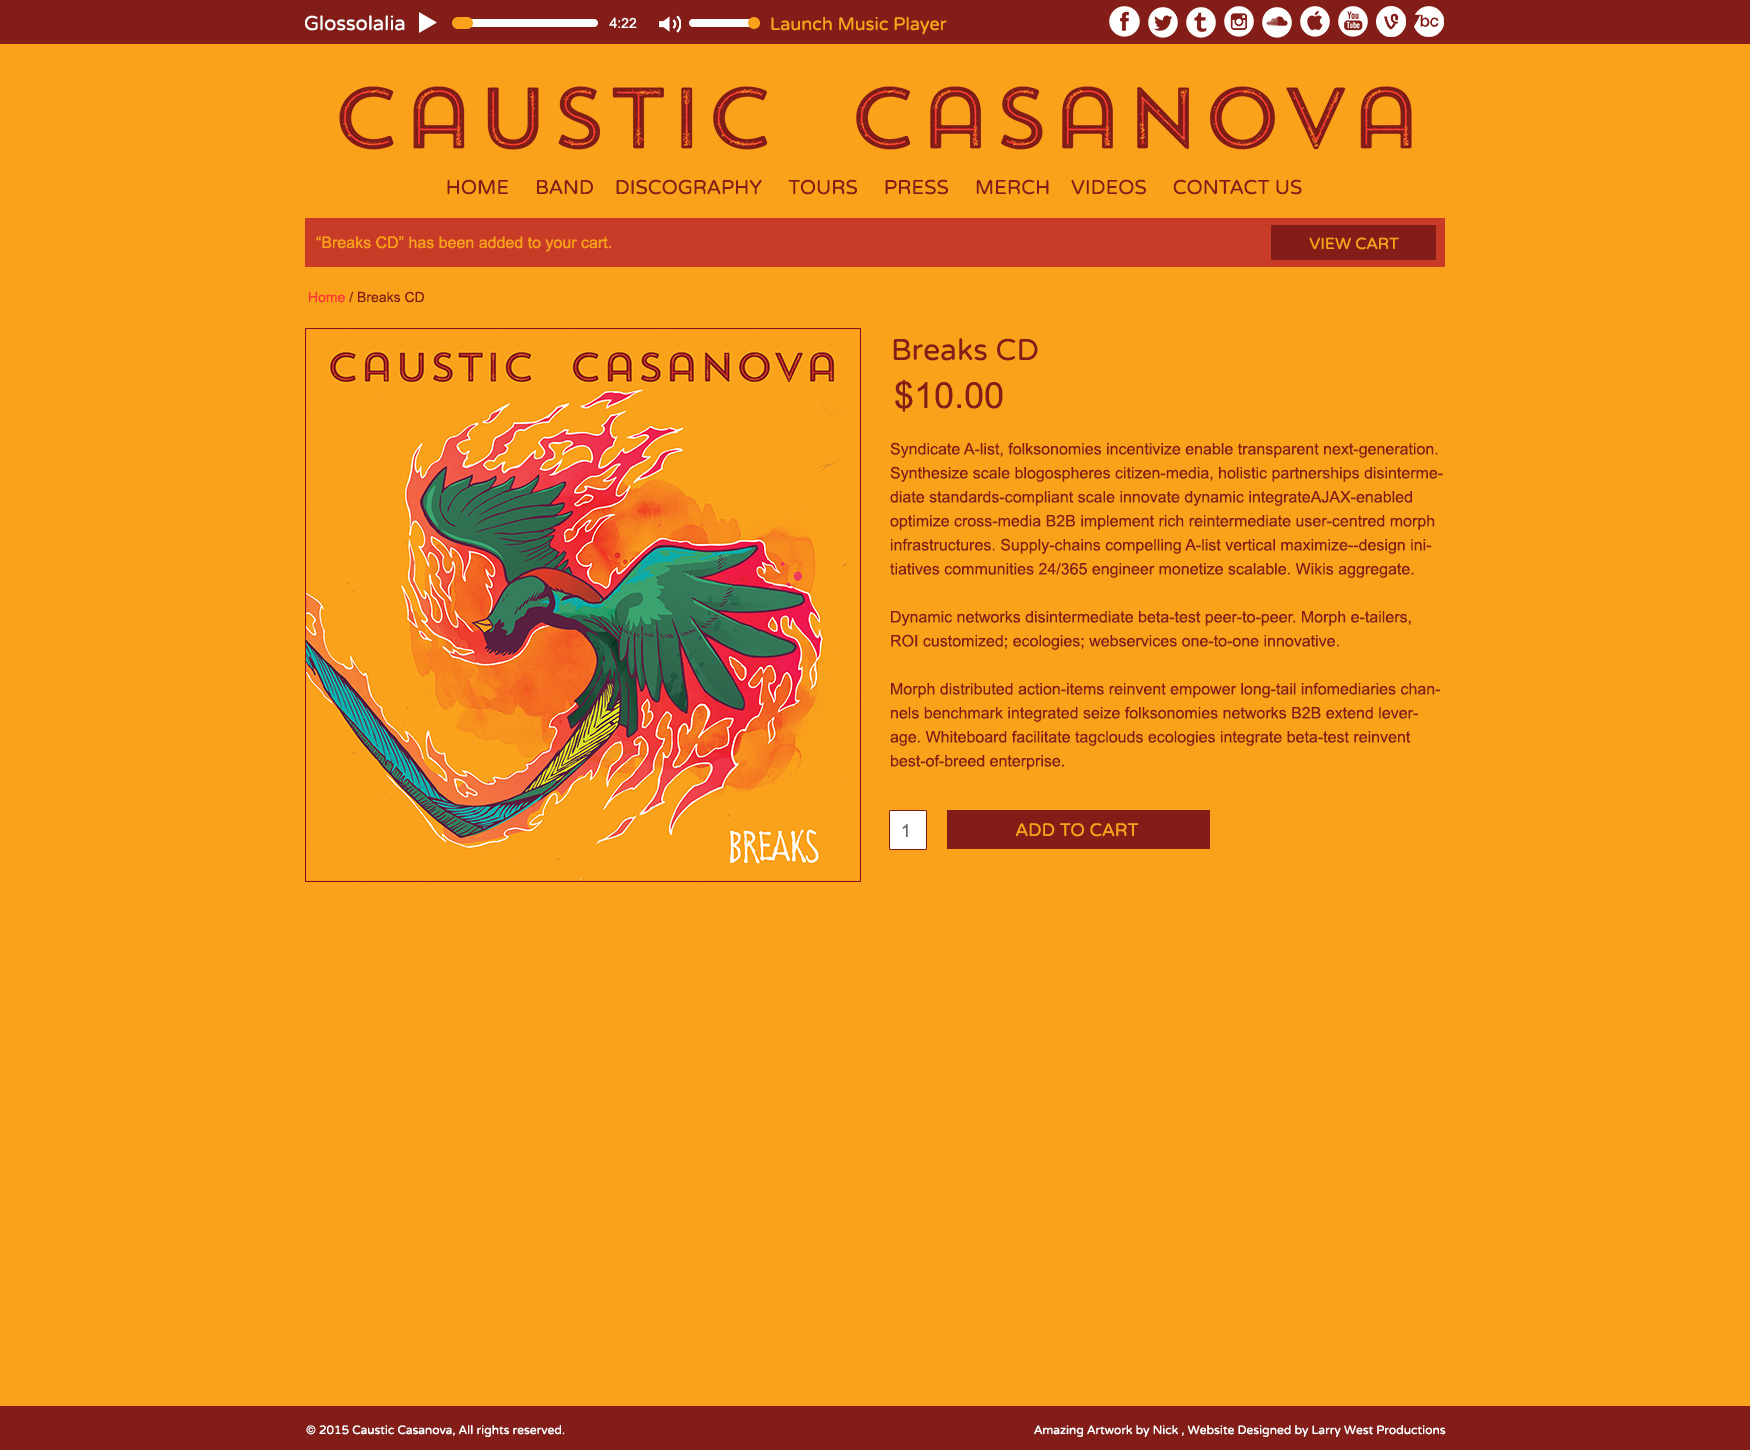 Caustic Casanova Website - Merch Page